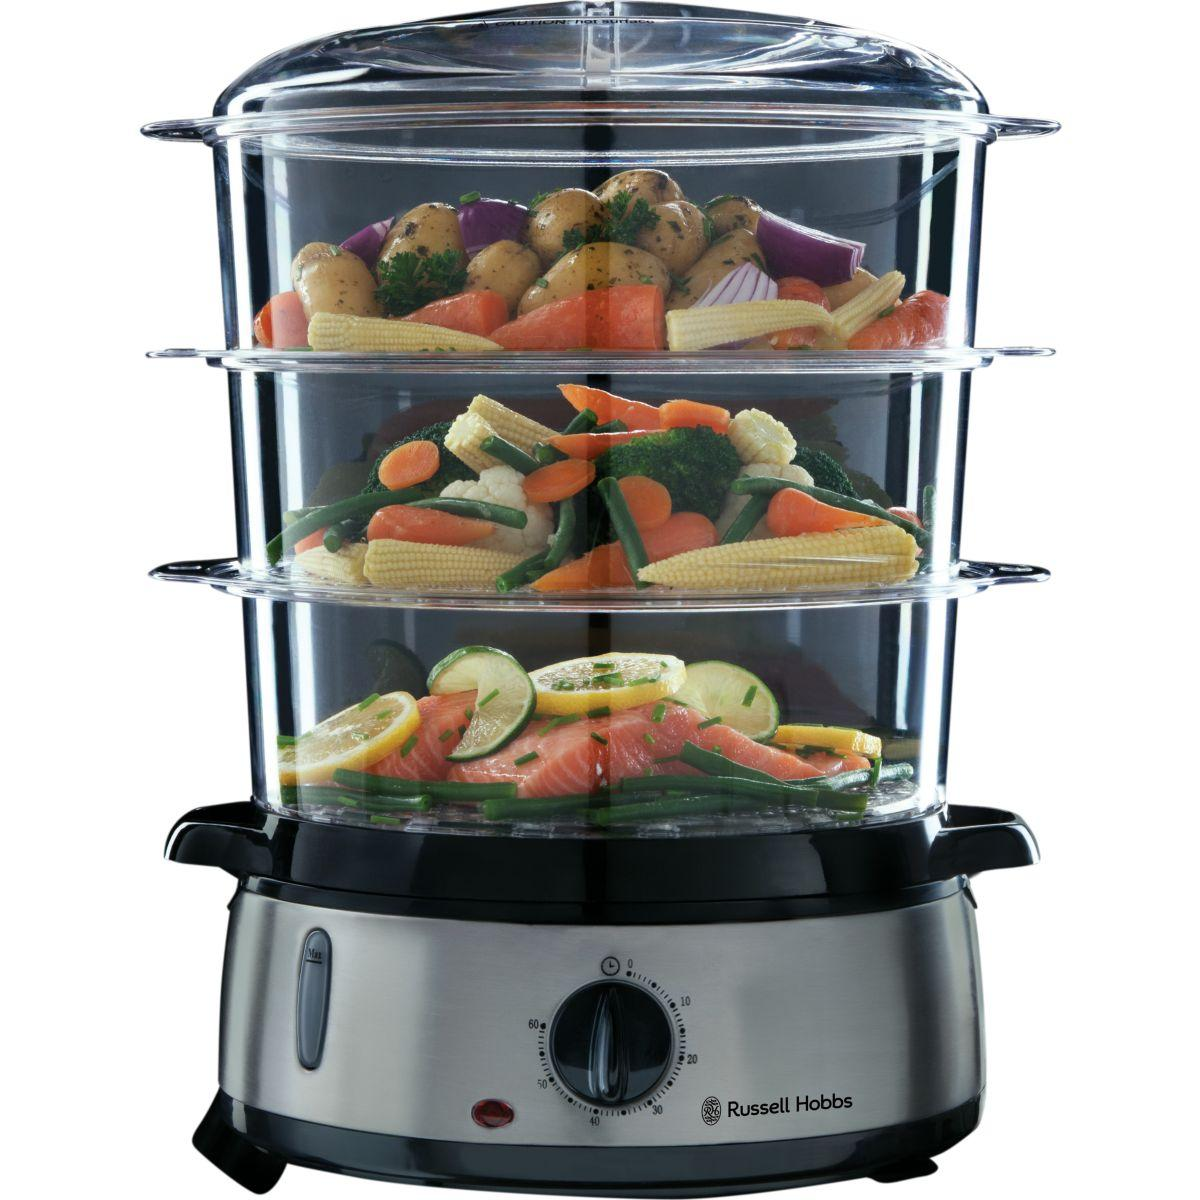 Cuiseur vapeur russell hobbs cook@home 19720-56 (photo)